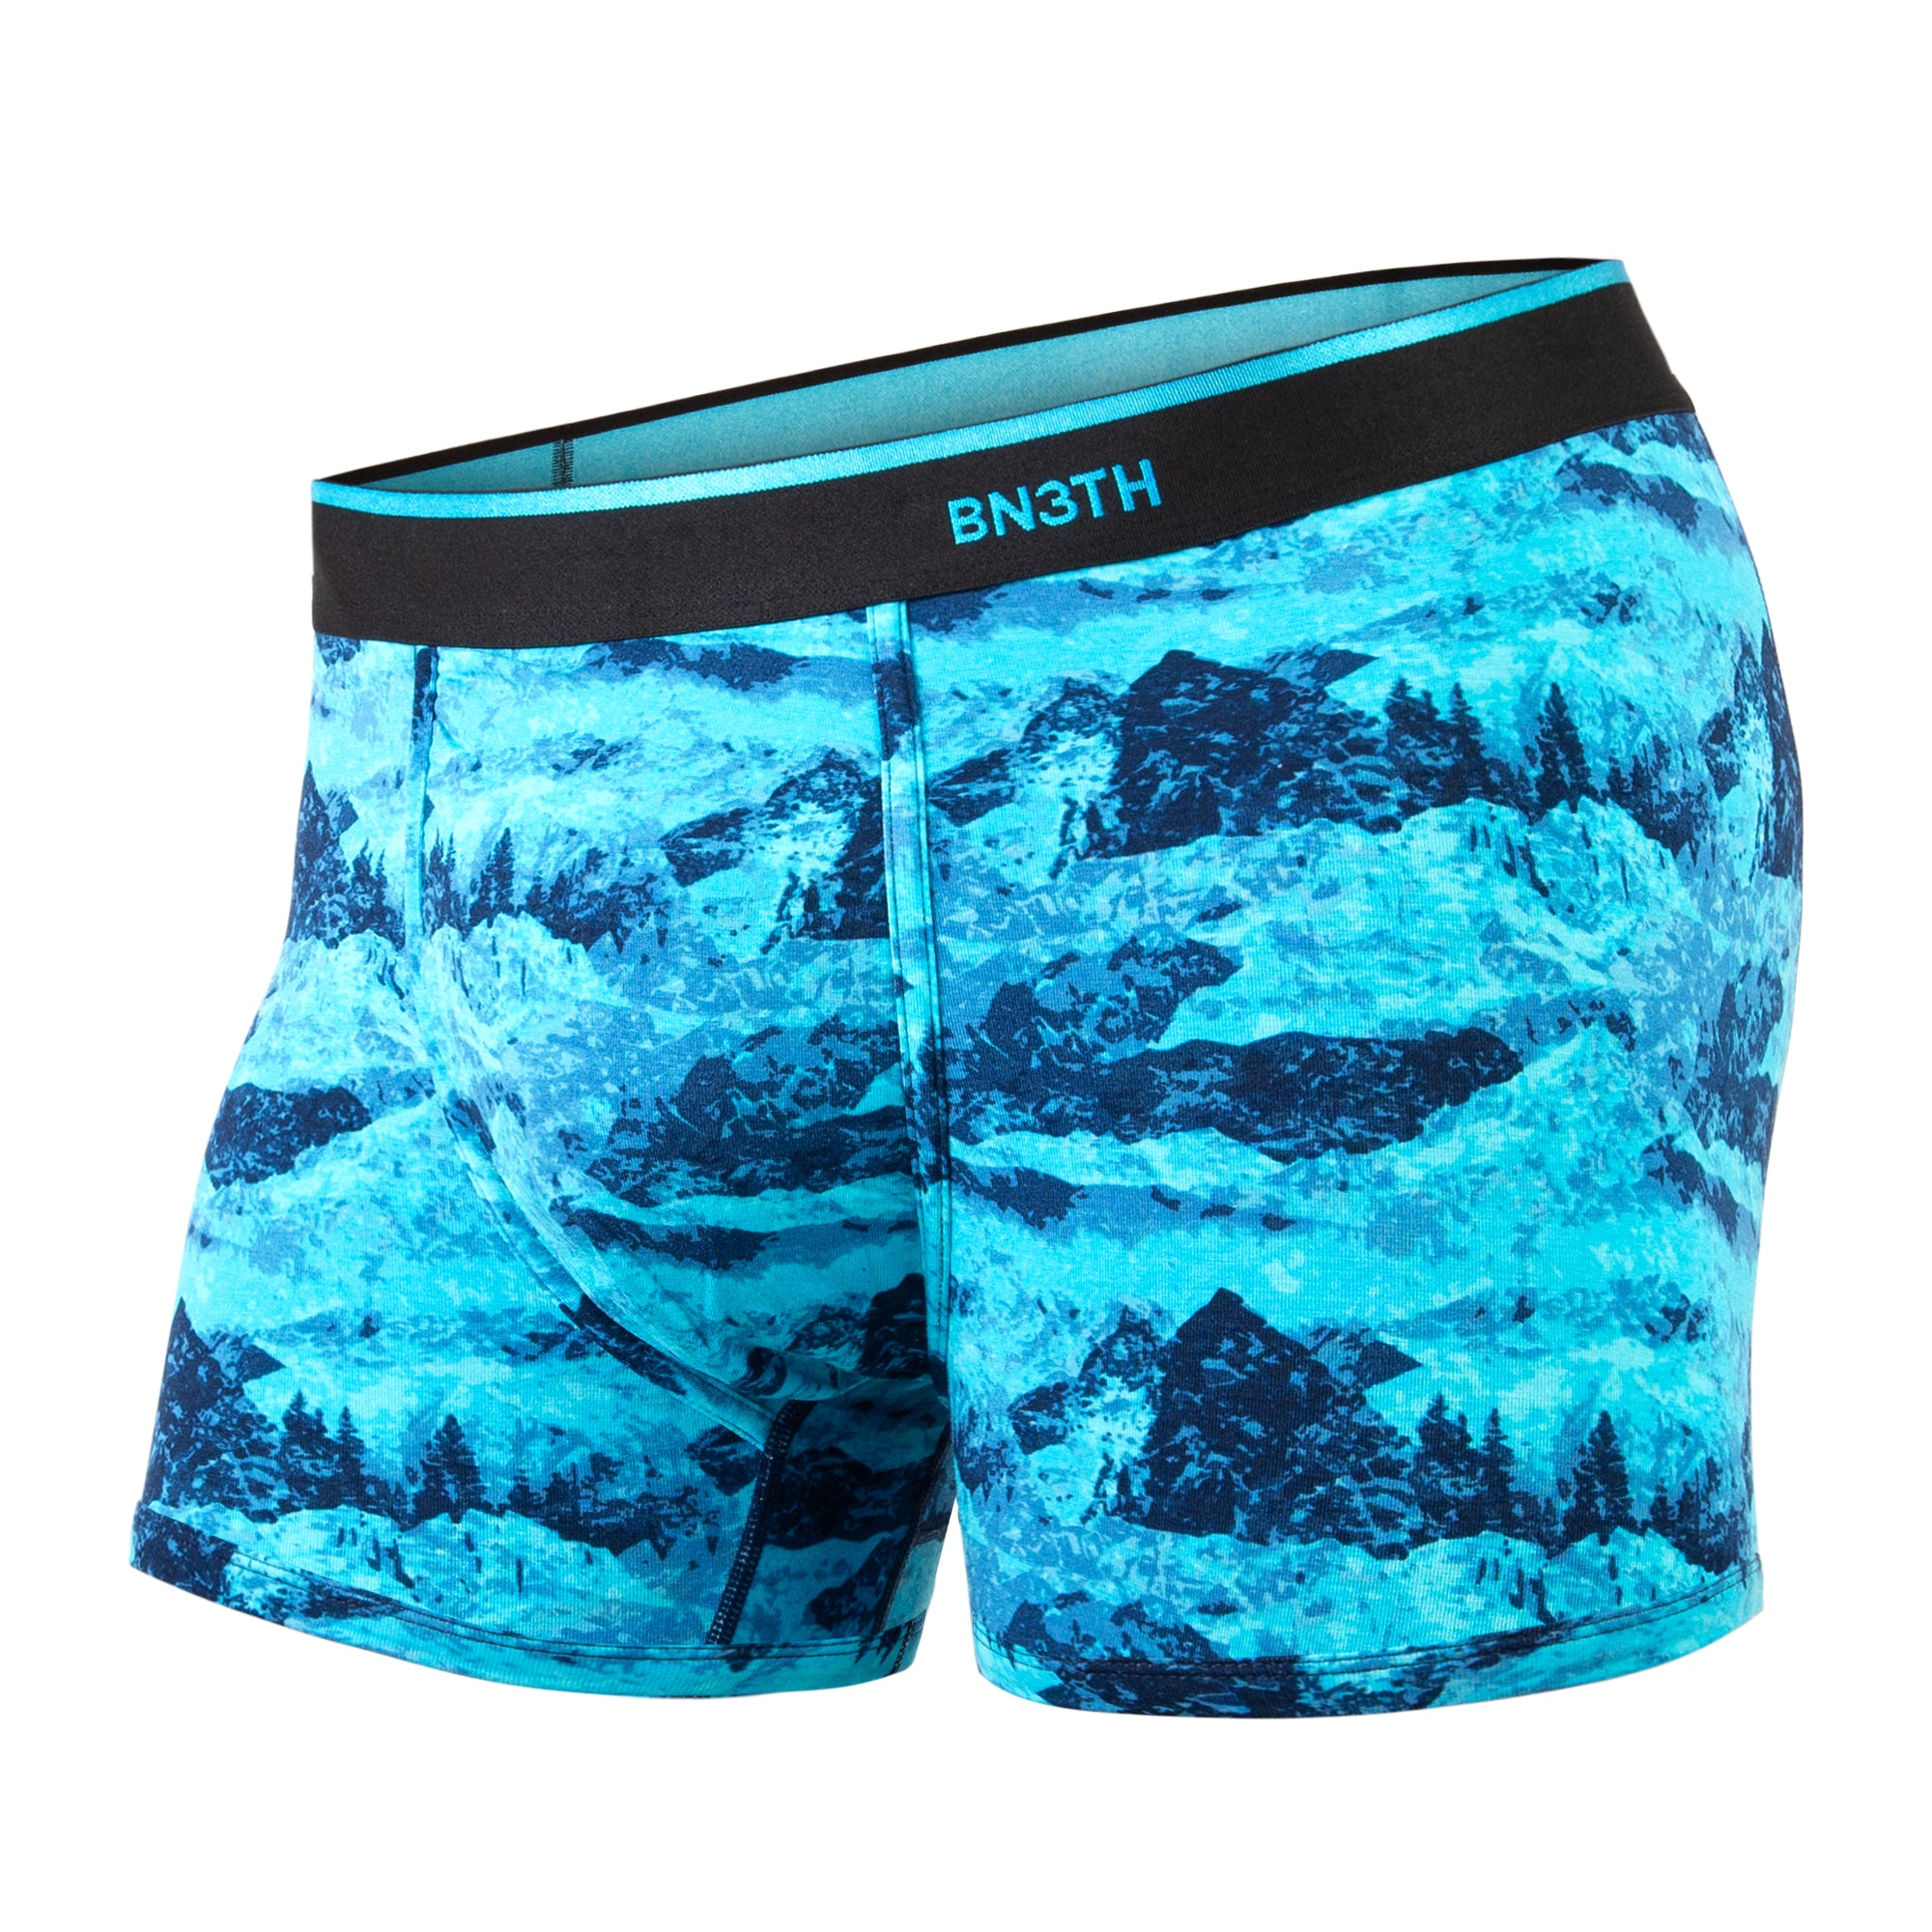 Boxer court Bn3th print peaks blues